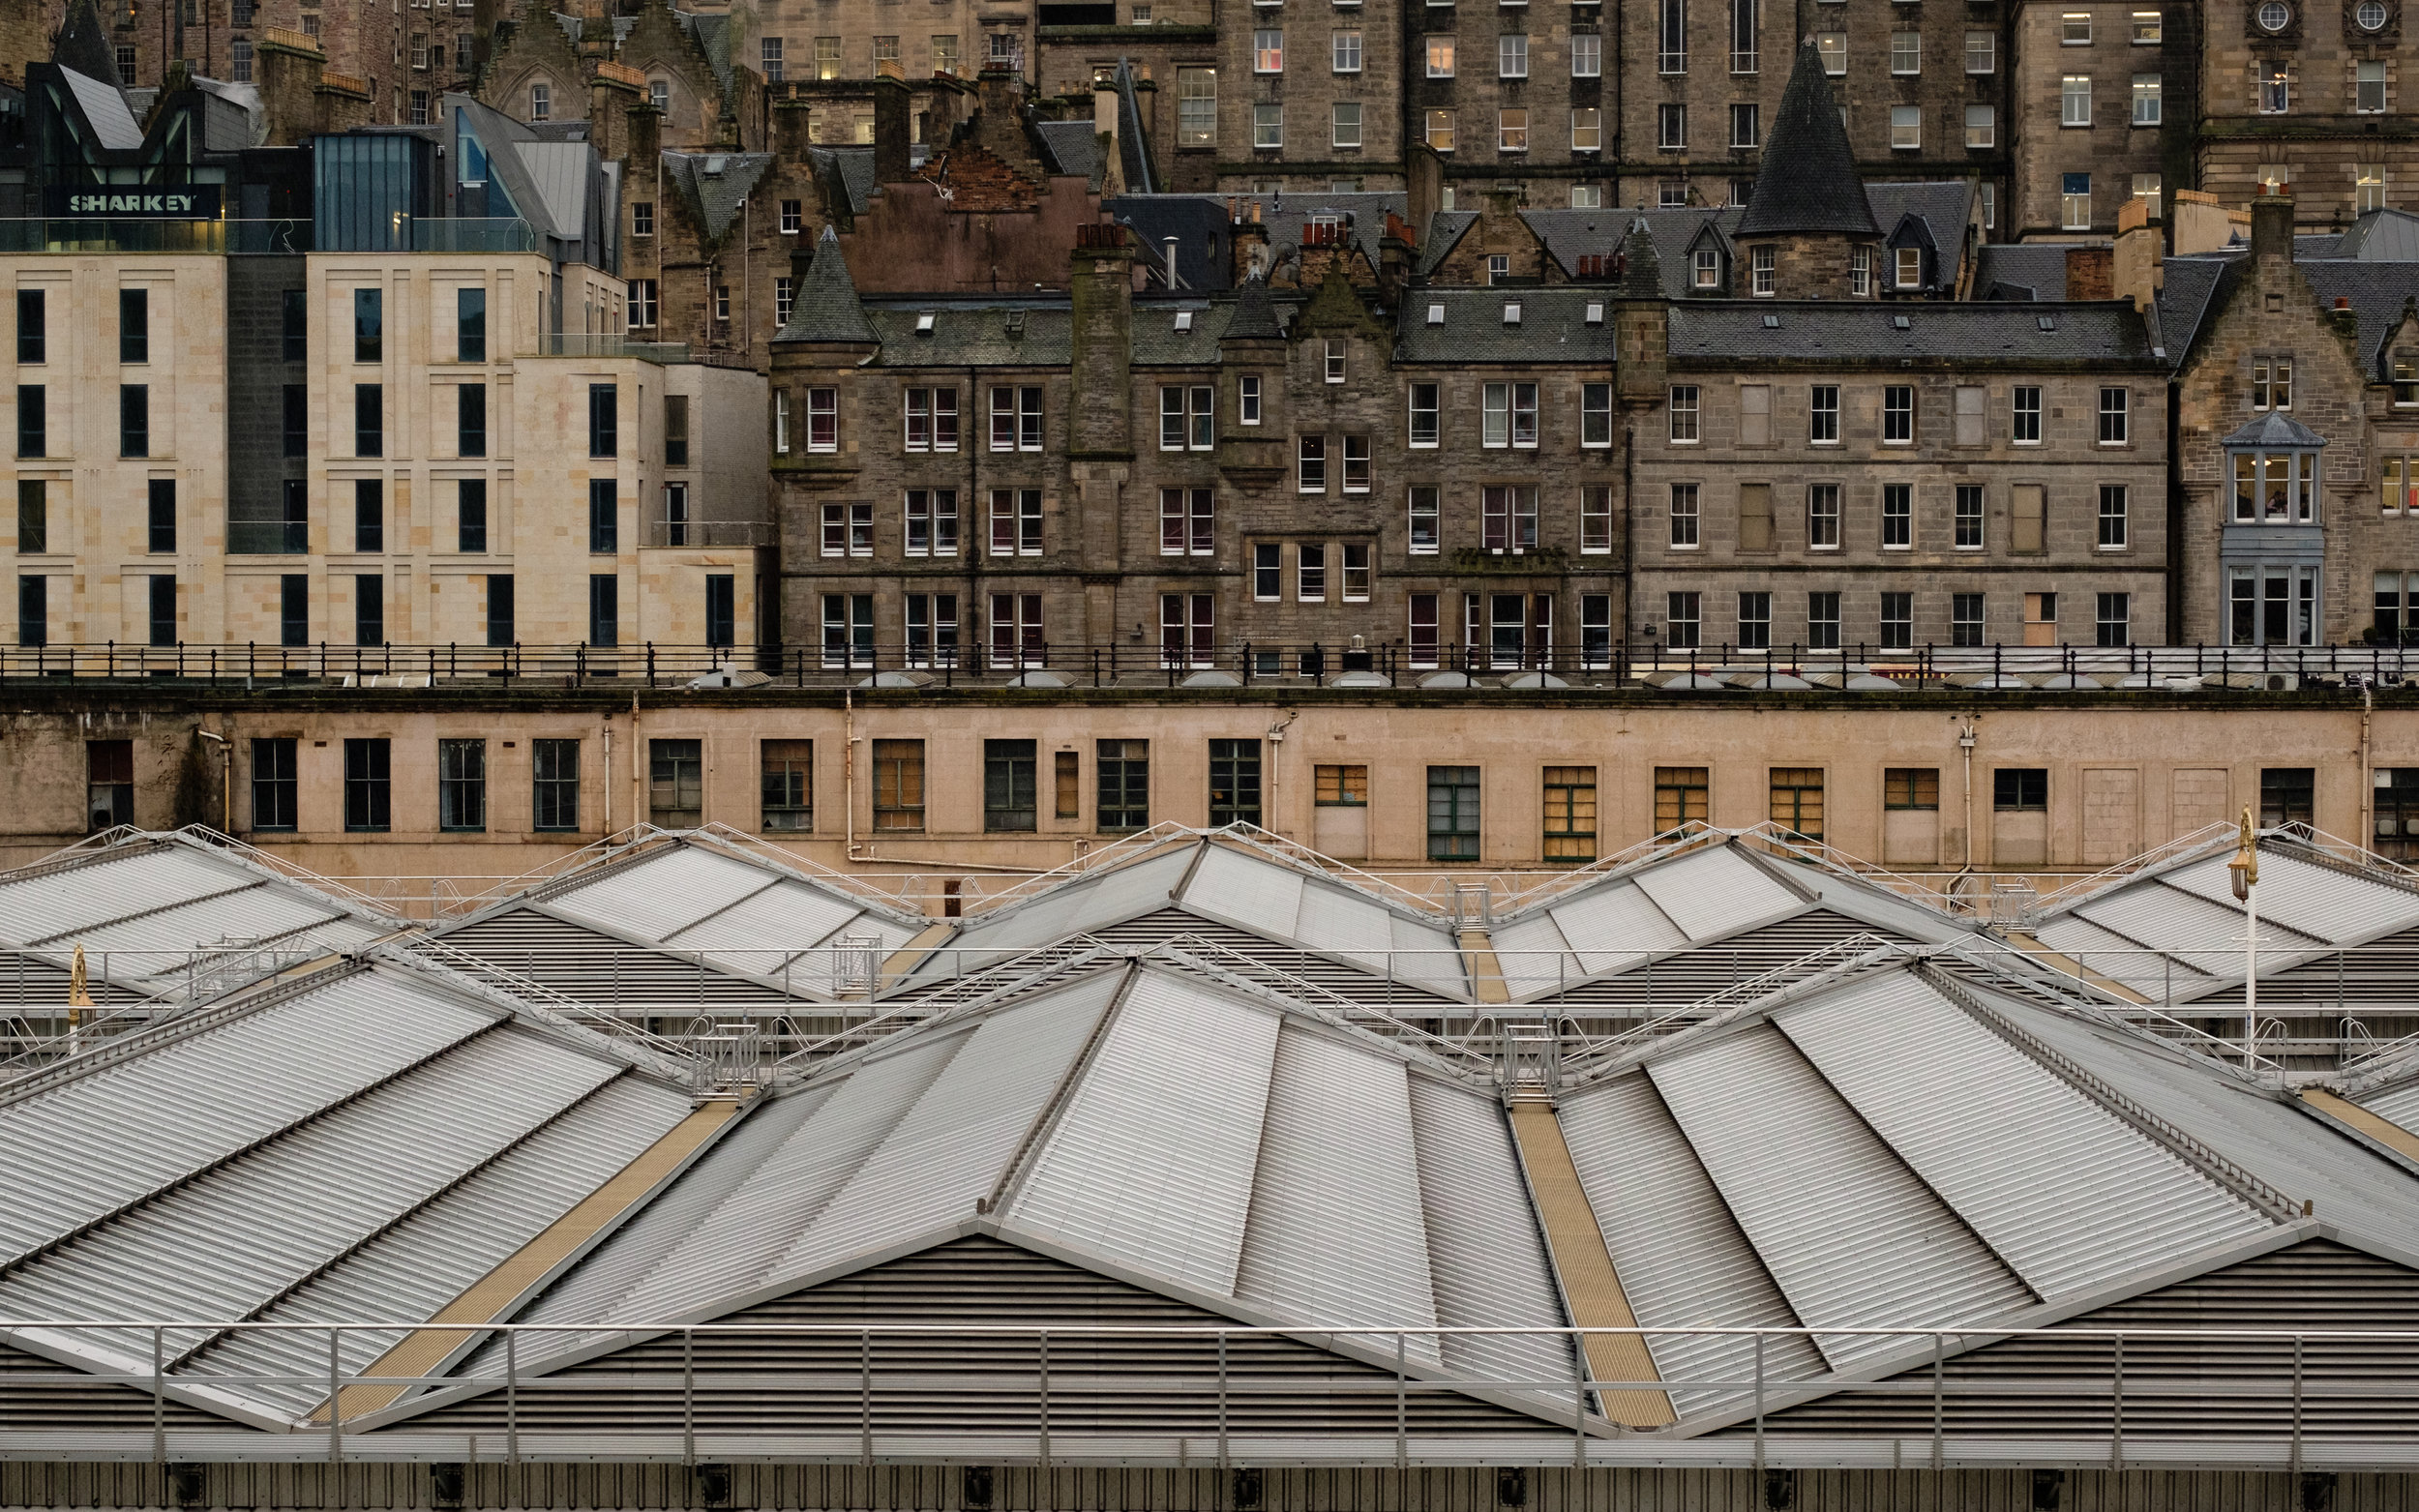 Looking out over Waverley Station toward the Old Town [XT2 / Provia]